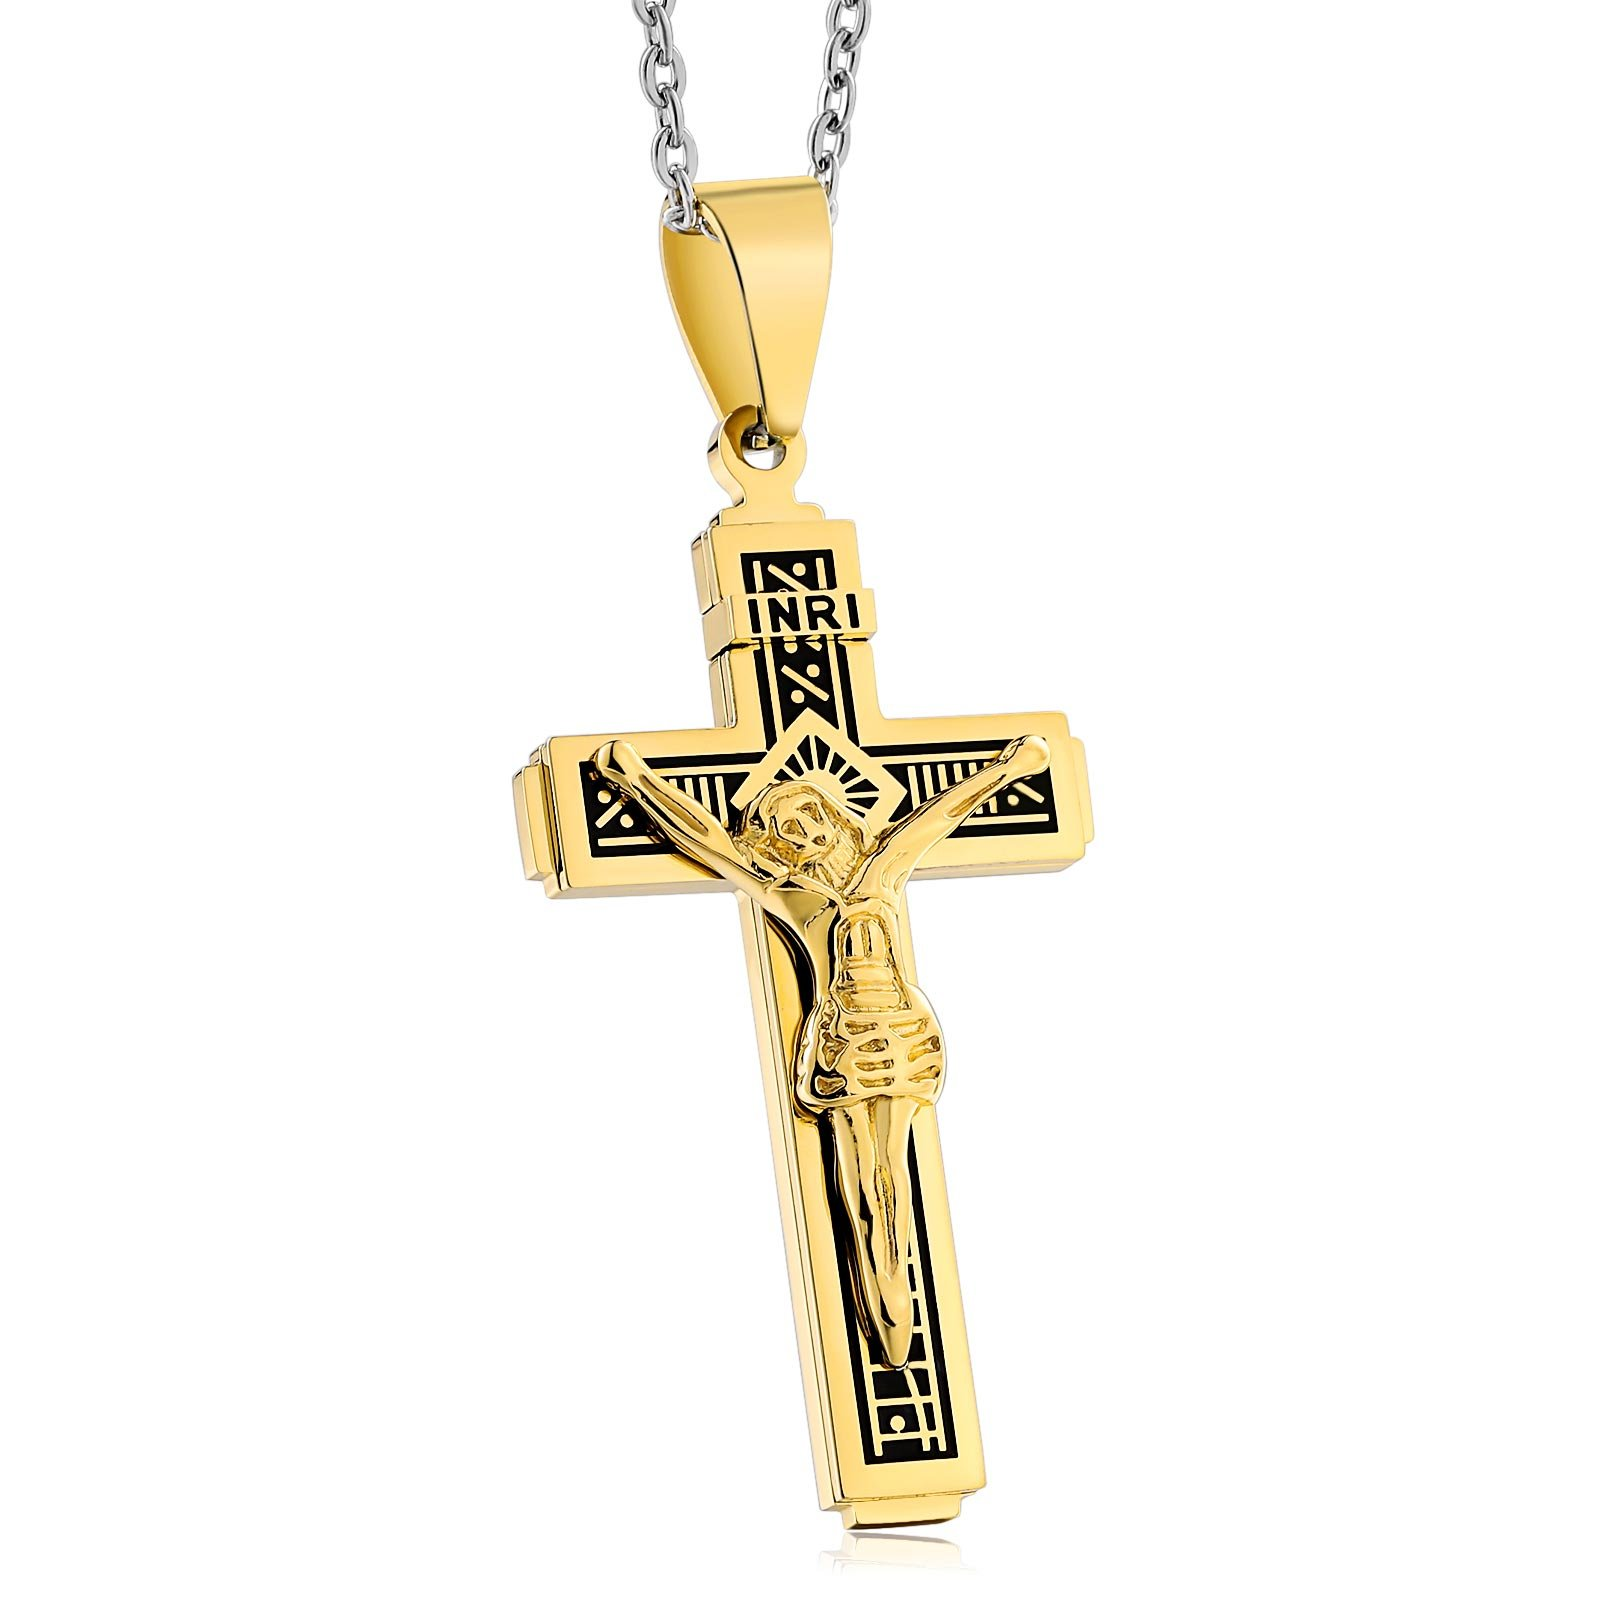 Bishilin Stainless Steel Pendant Necklace for Men Women Jesus Cross with Engraving Pattern Pendant Gold